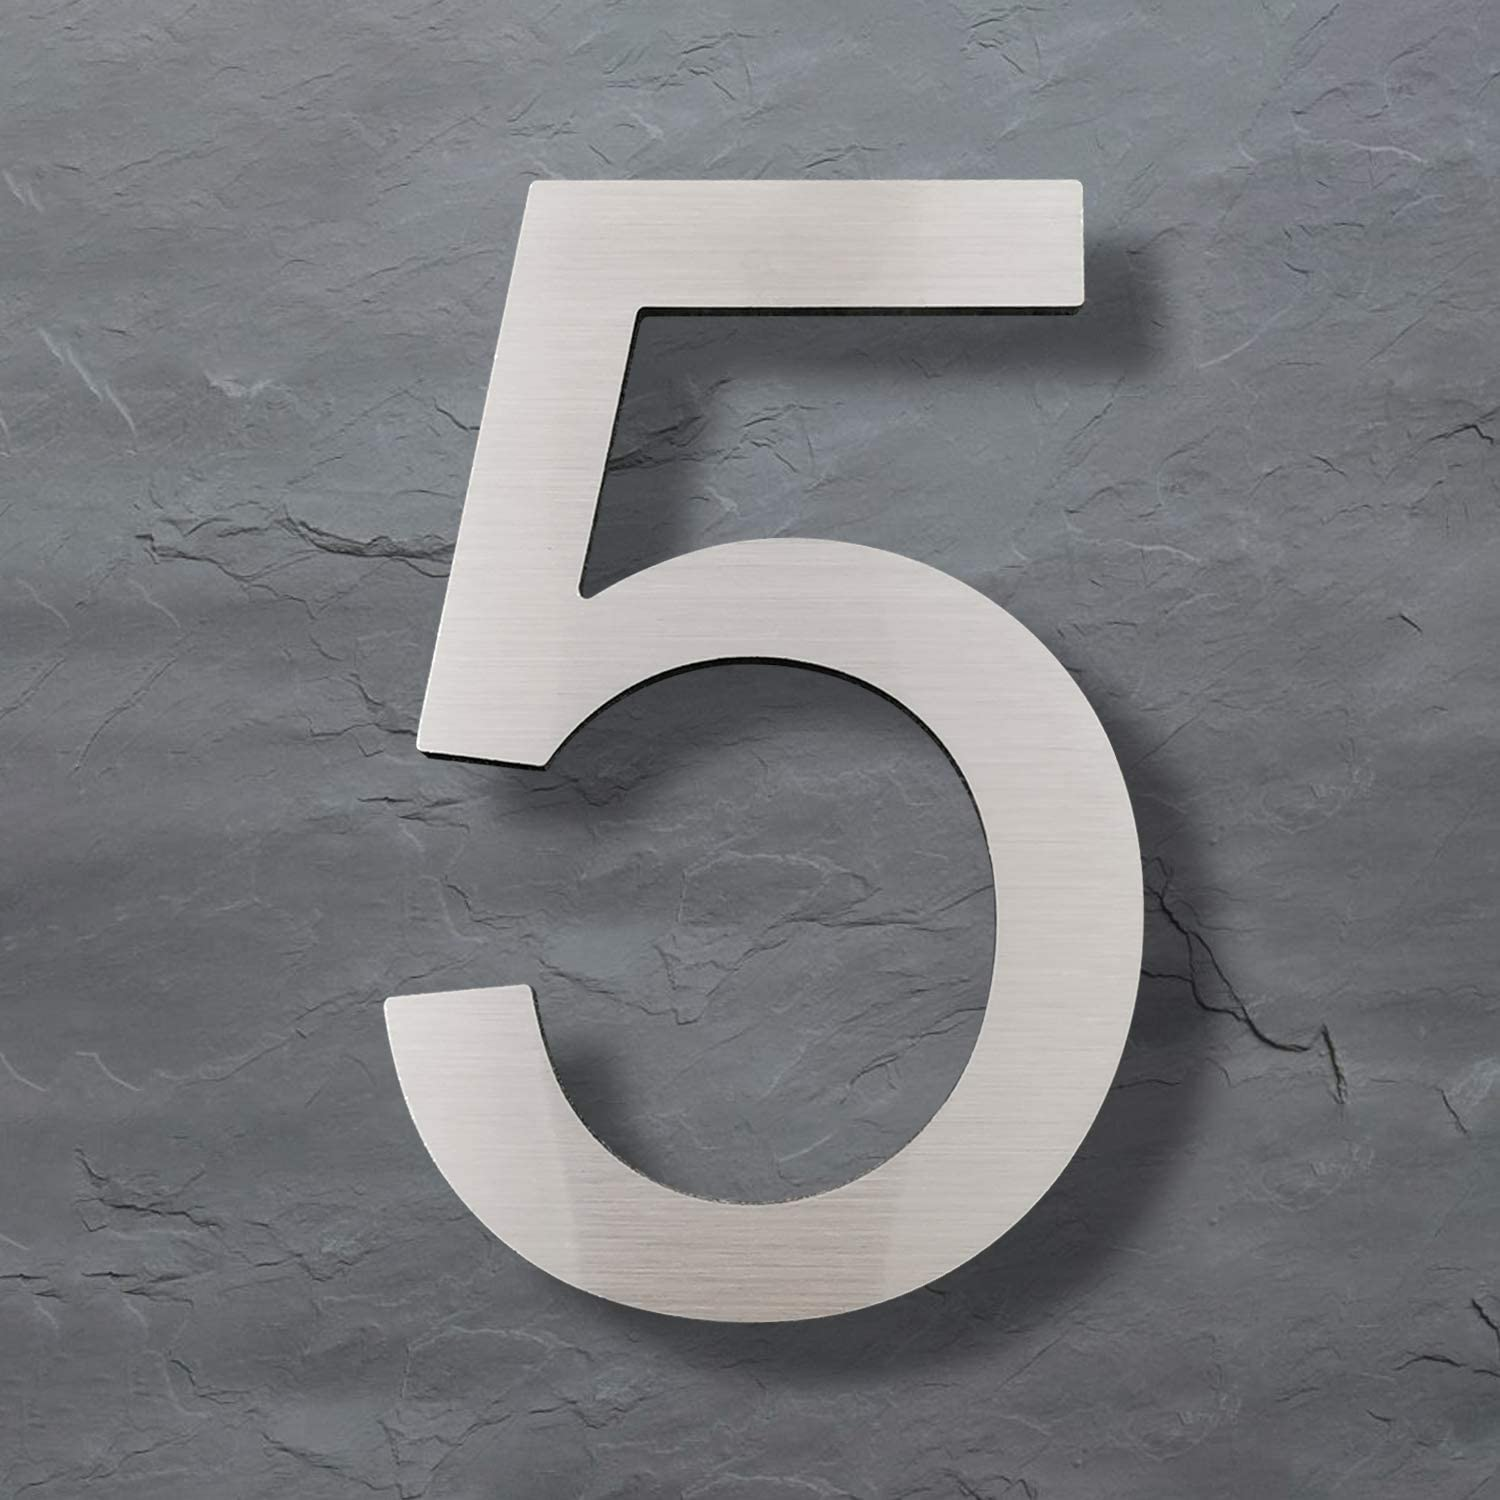 Modern House Numbers-5 Inch Solid Stainless Steel Street Address Number- Elegant Floating Appearance/Easy to Install, number 5